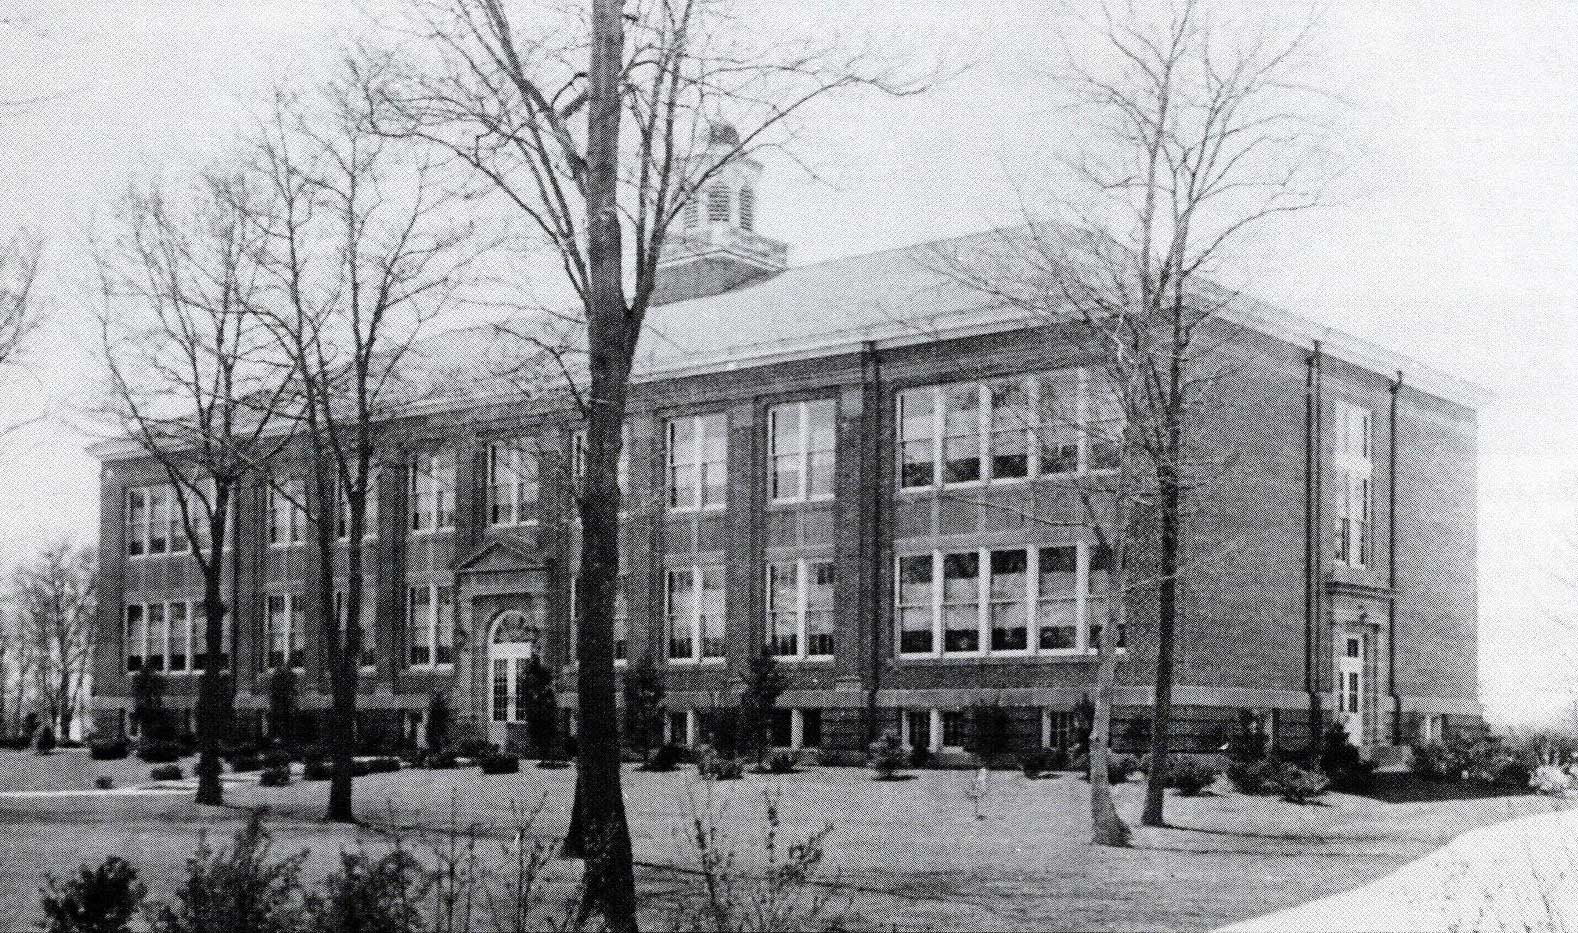 Bayport Blue Point High School